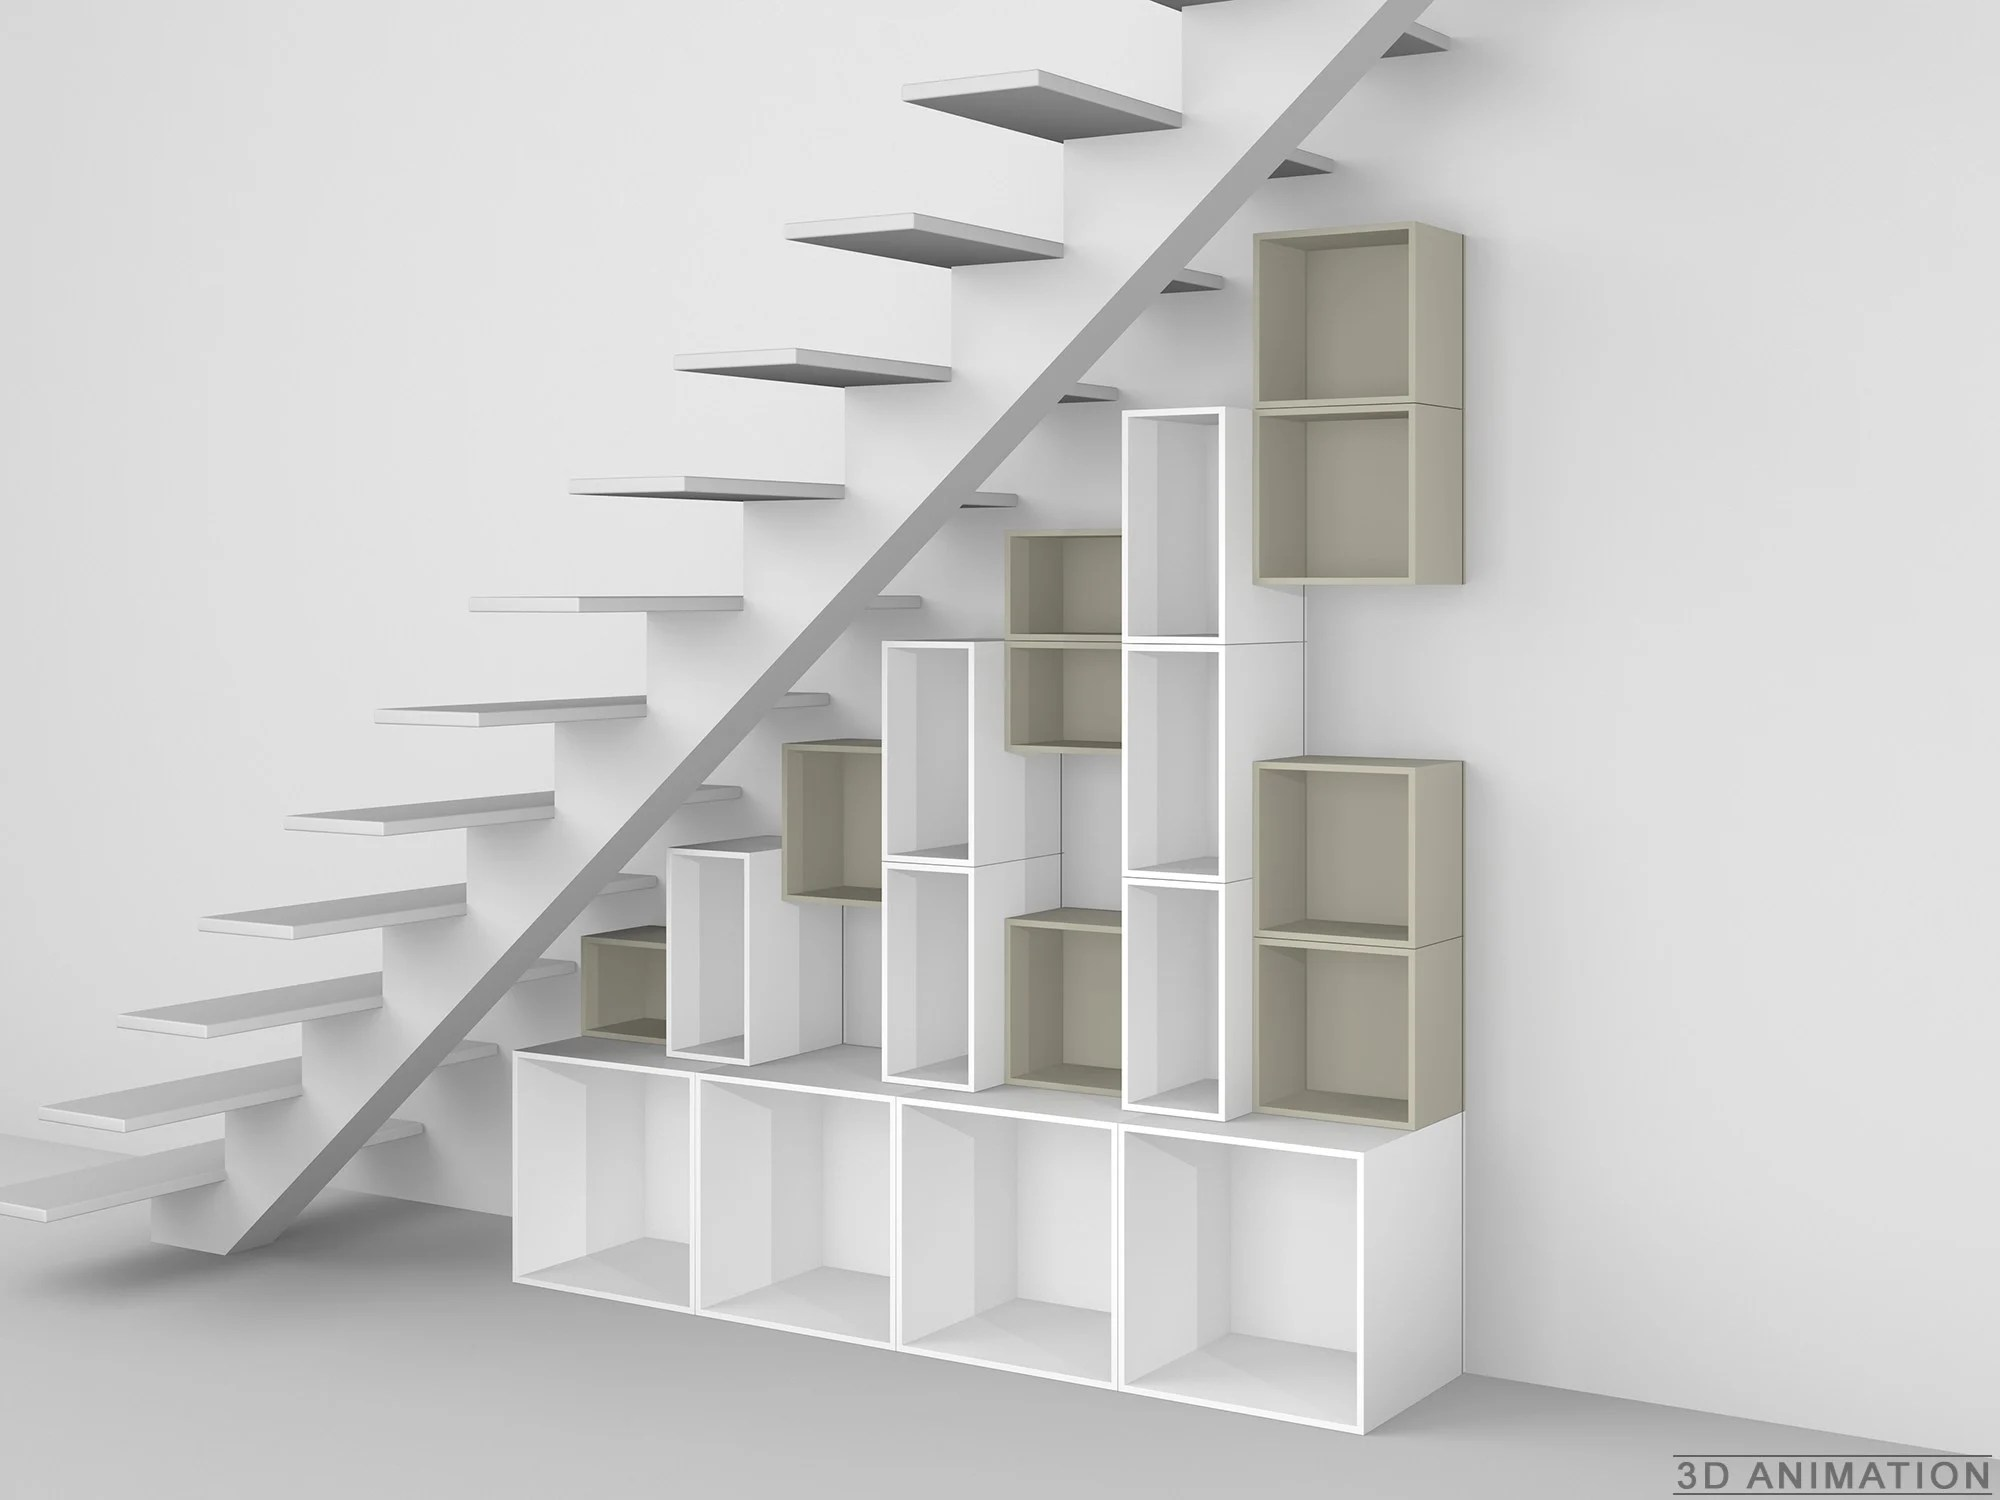 Under Stairs Bookcase Modular Shelving Unit By Cubit By Mymito Design Cubit